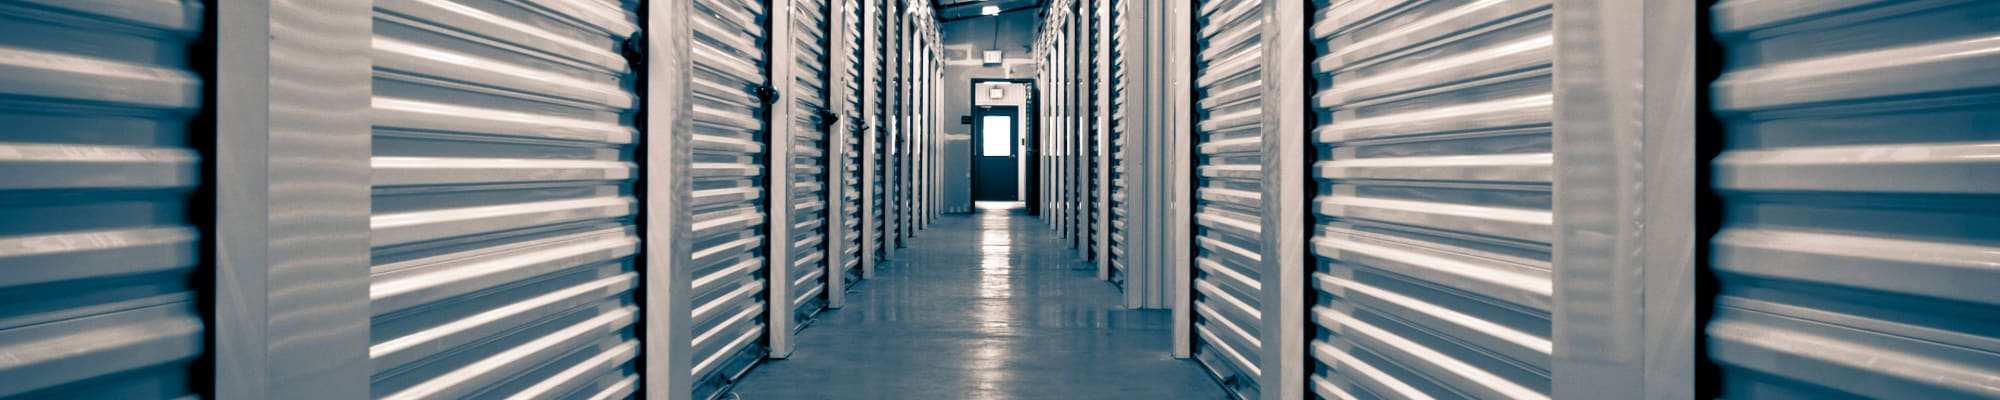 Reviews for Store It All Self Storage - Mines in Laredo, Texas